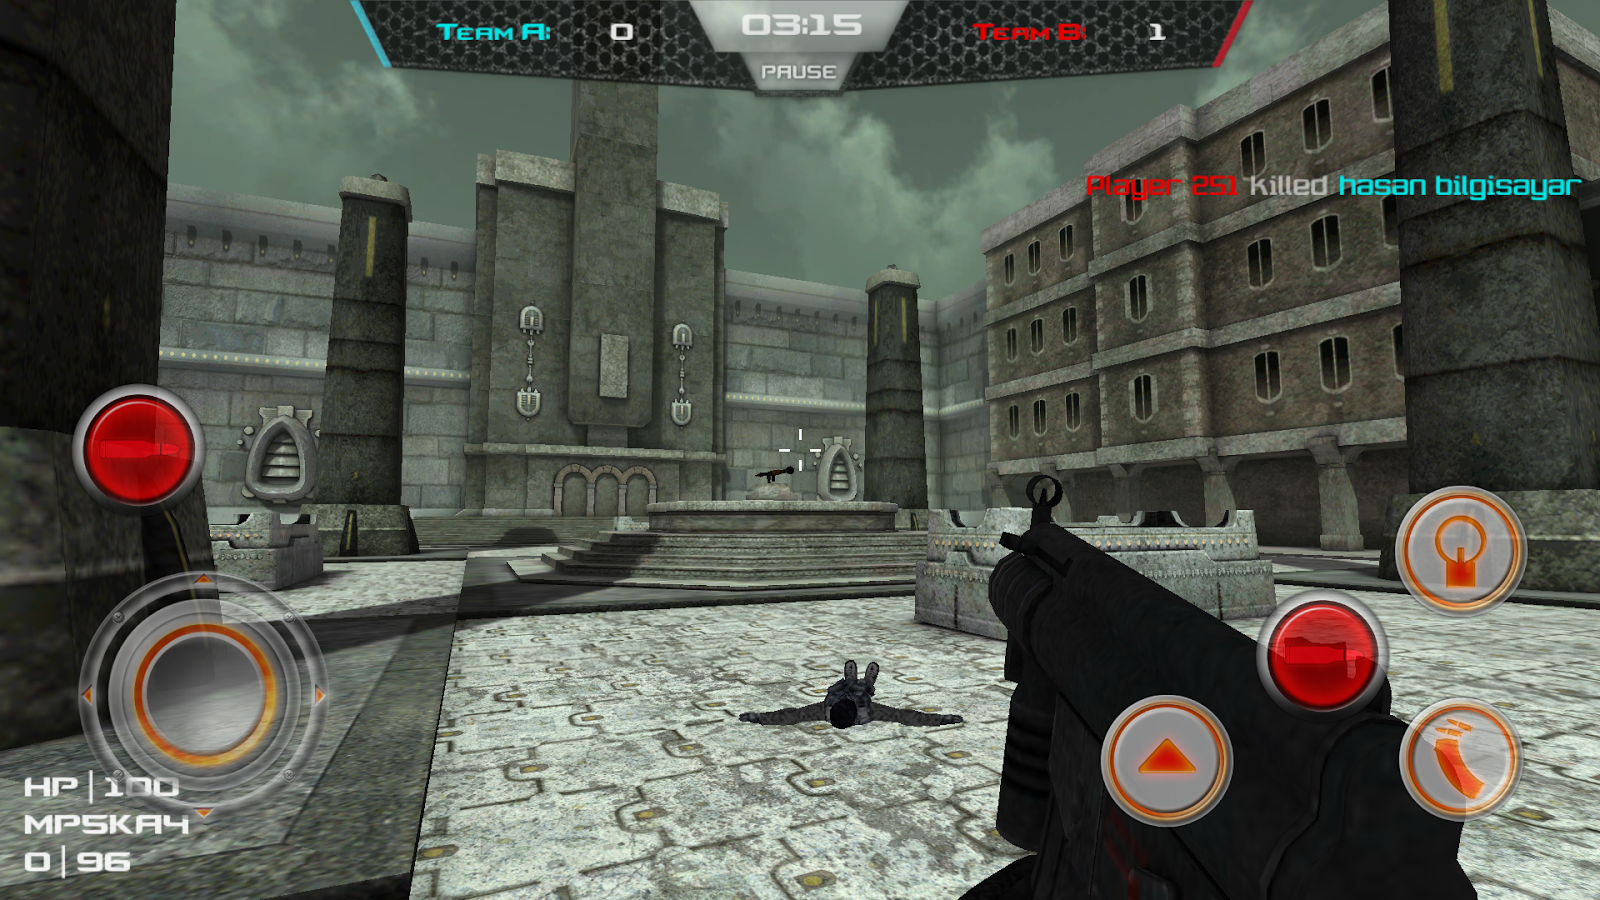 pc car games free download full version for windows 7